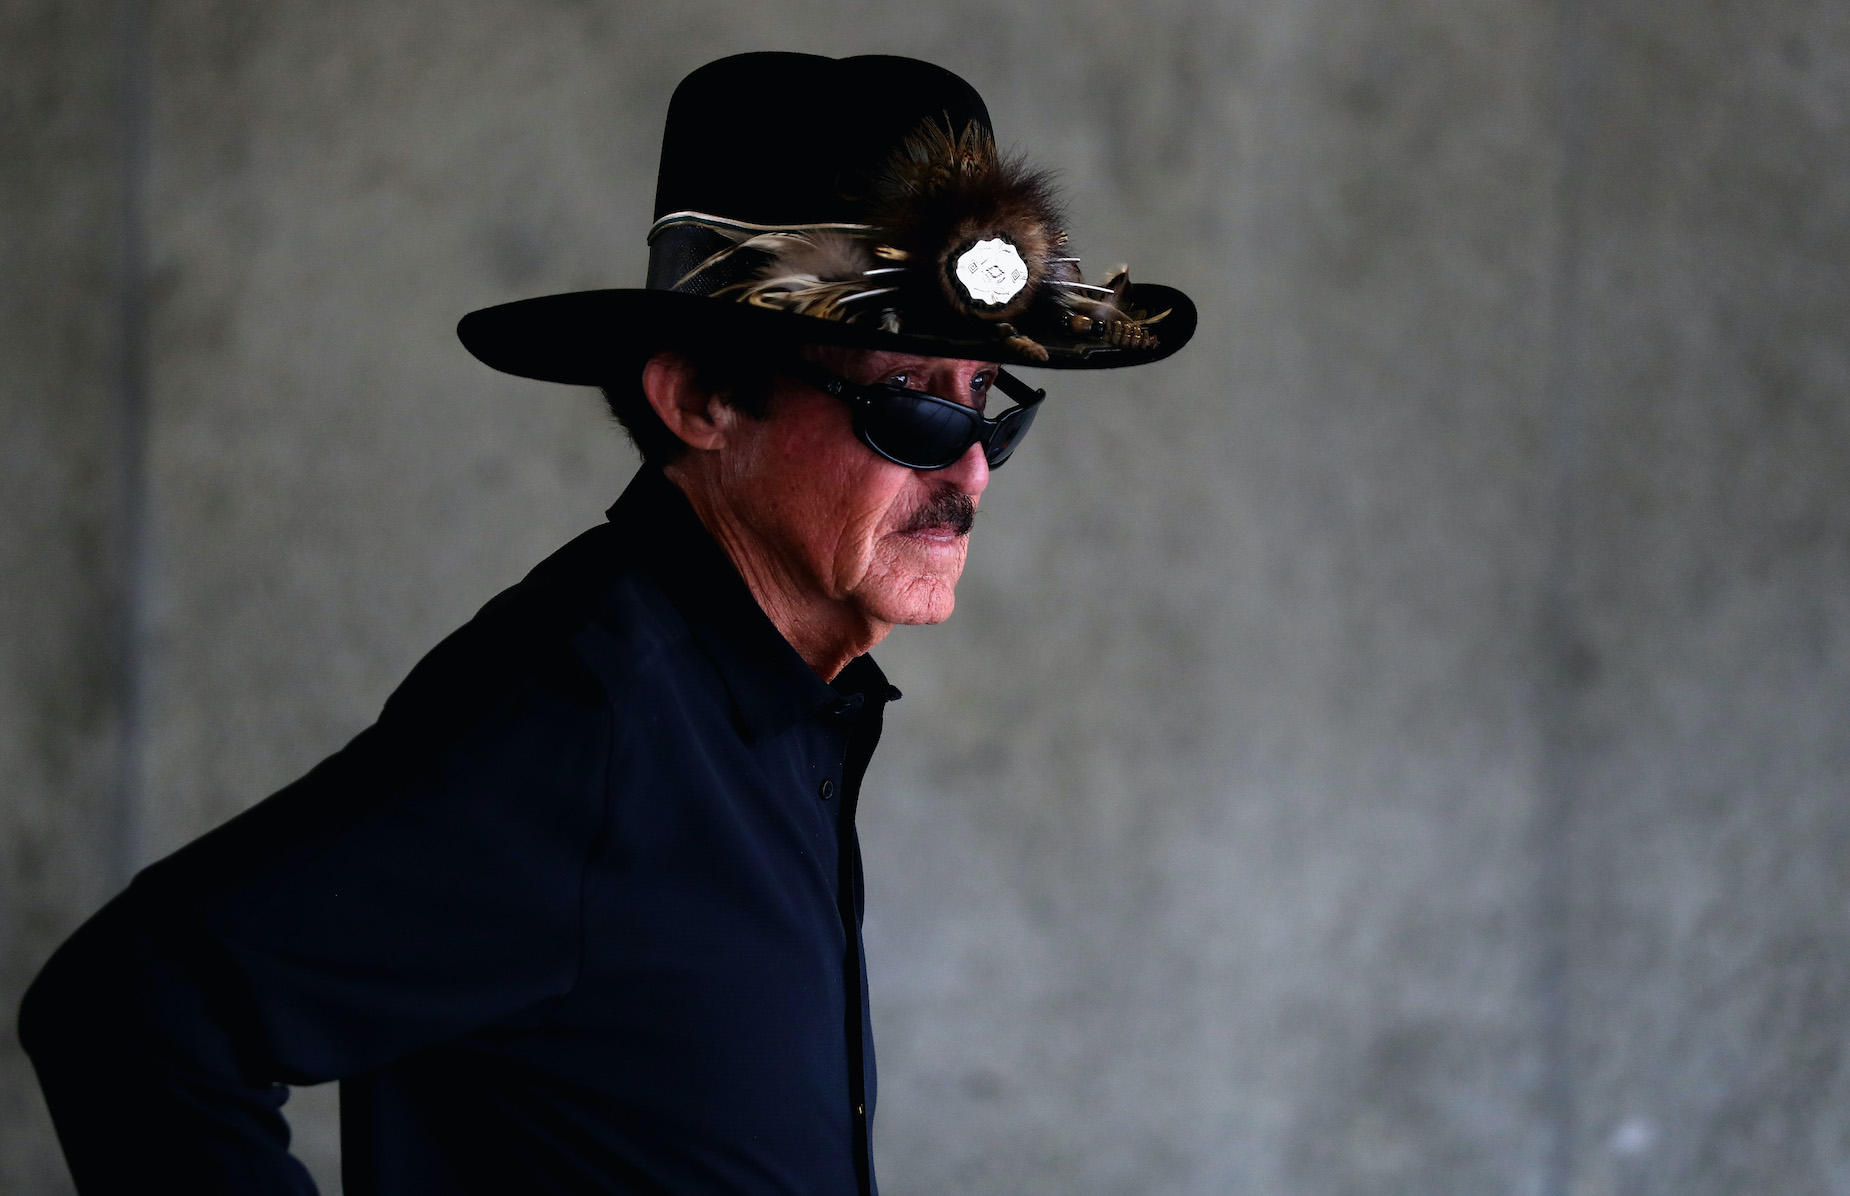 Richard Petty Received a Life-Changing Piece of Fan Mail After His Grandson's Tragic Death